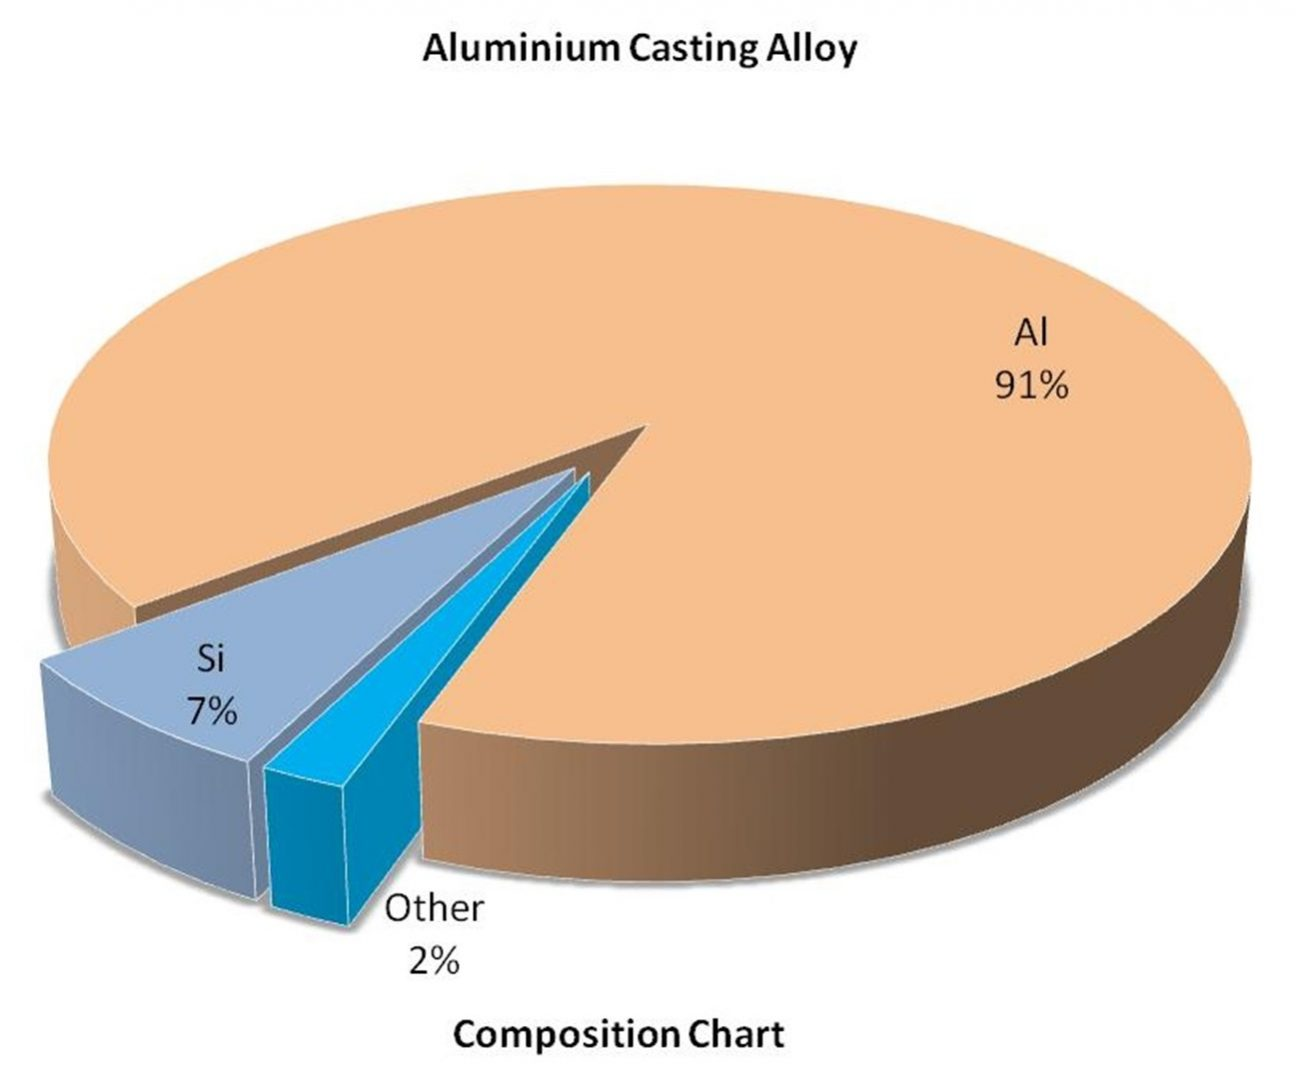 Composition Chart - Al Casting Alloy